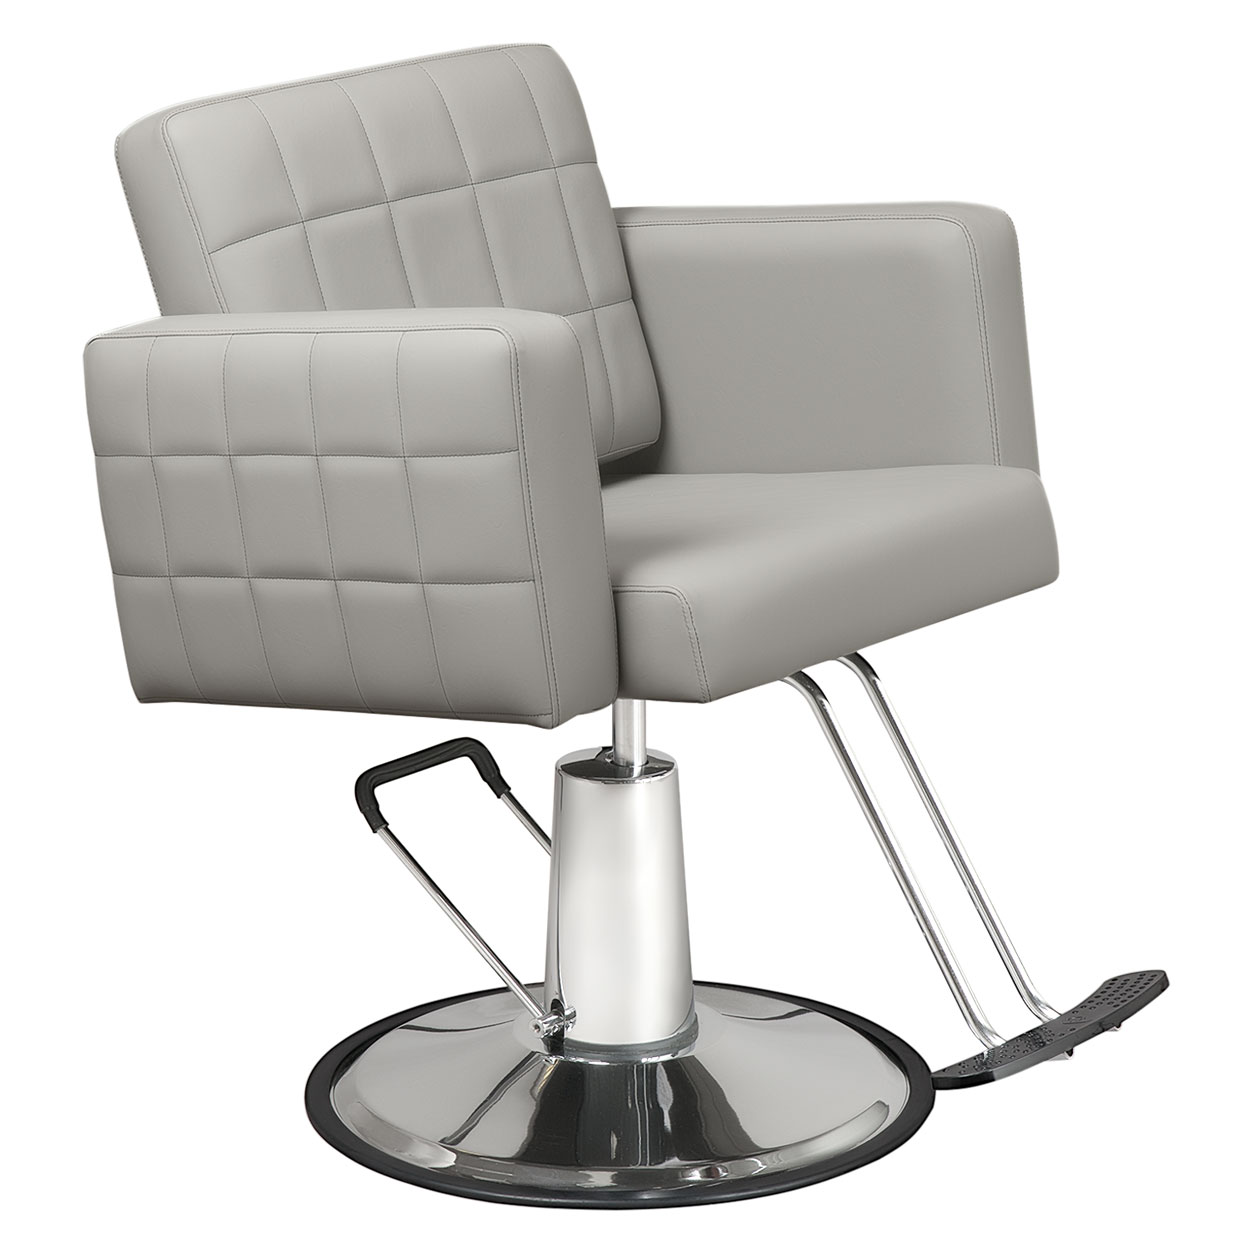 Pibbs 2106 Matera Styling Chair image size reference